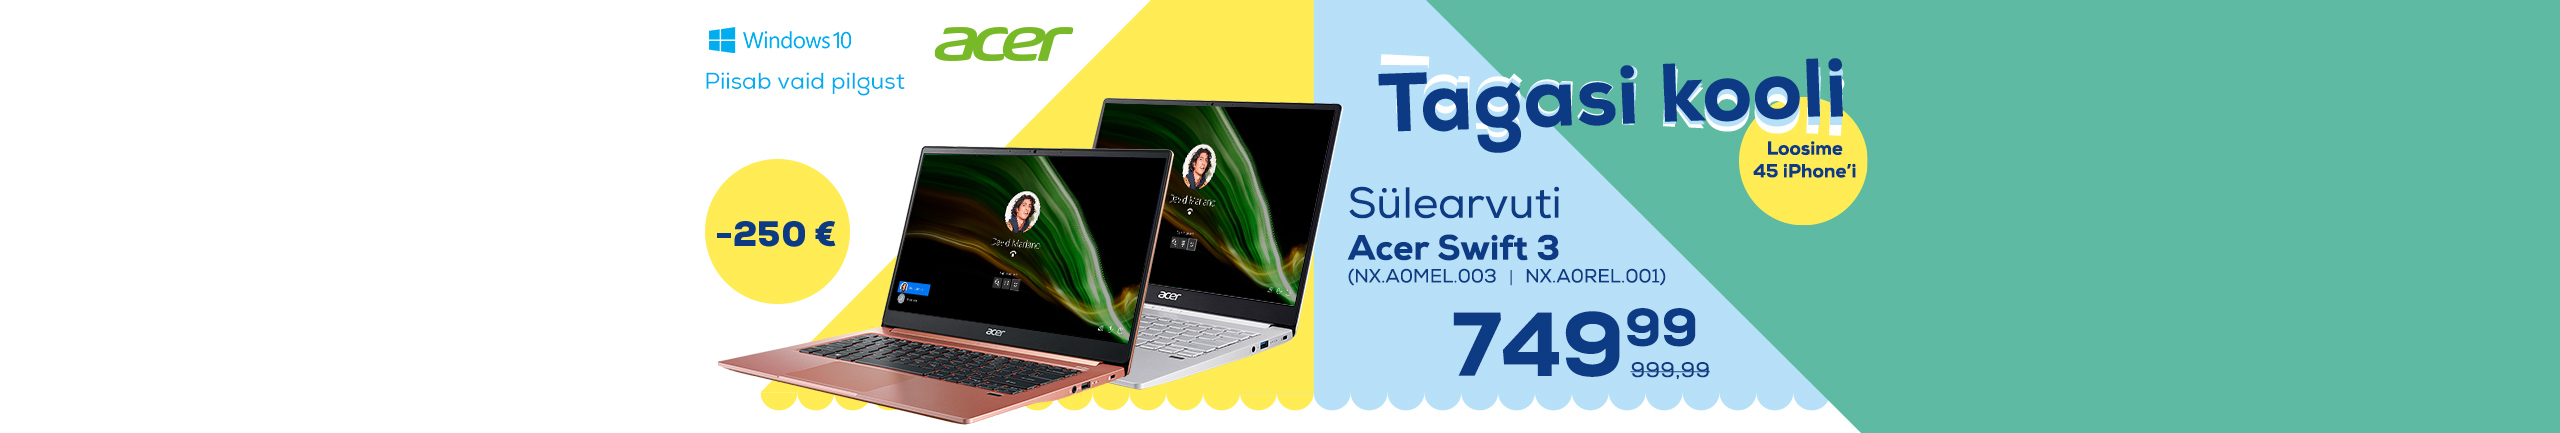 NPL Buy any computer and win brand new iPhone 12 mini, Acer Swift3